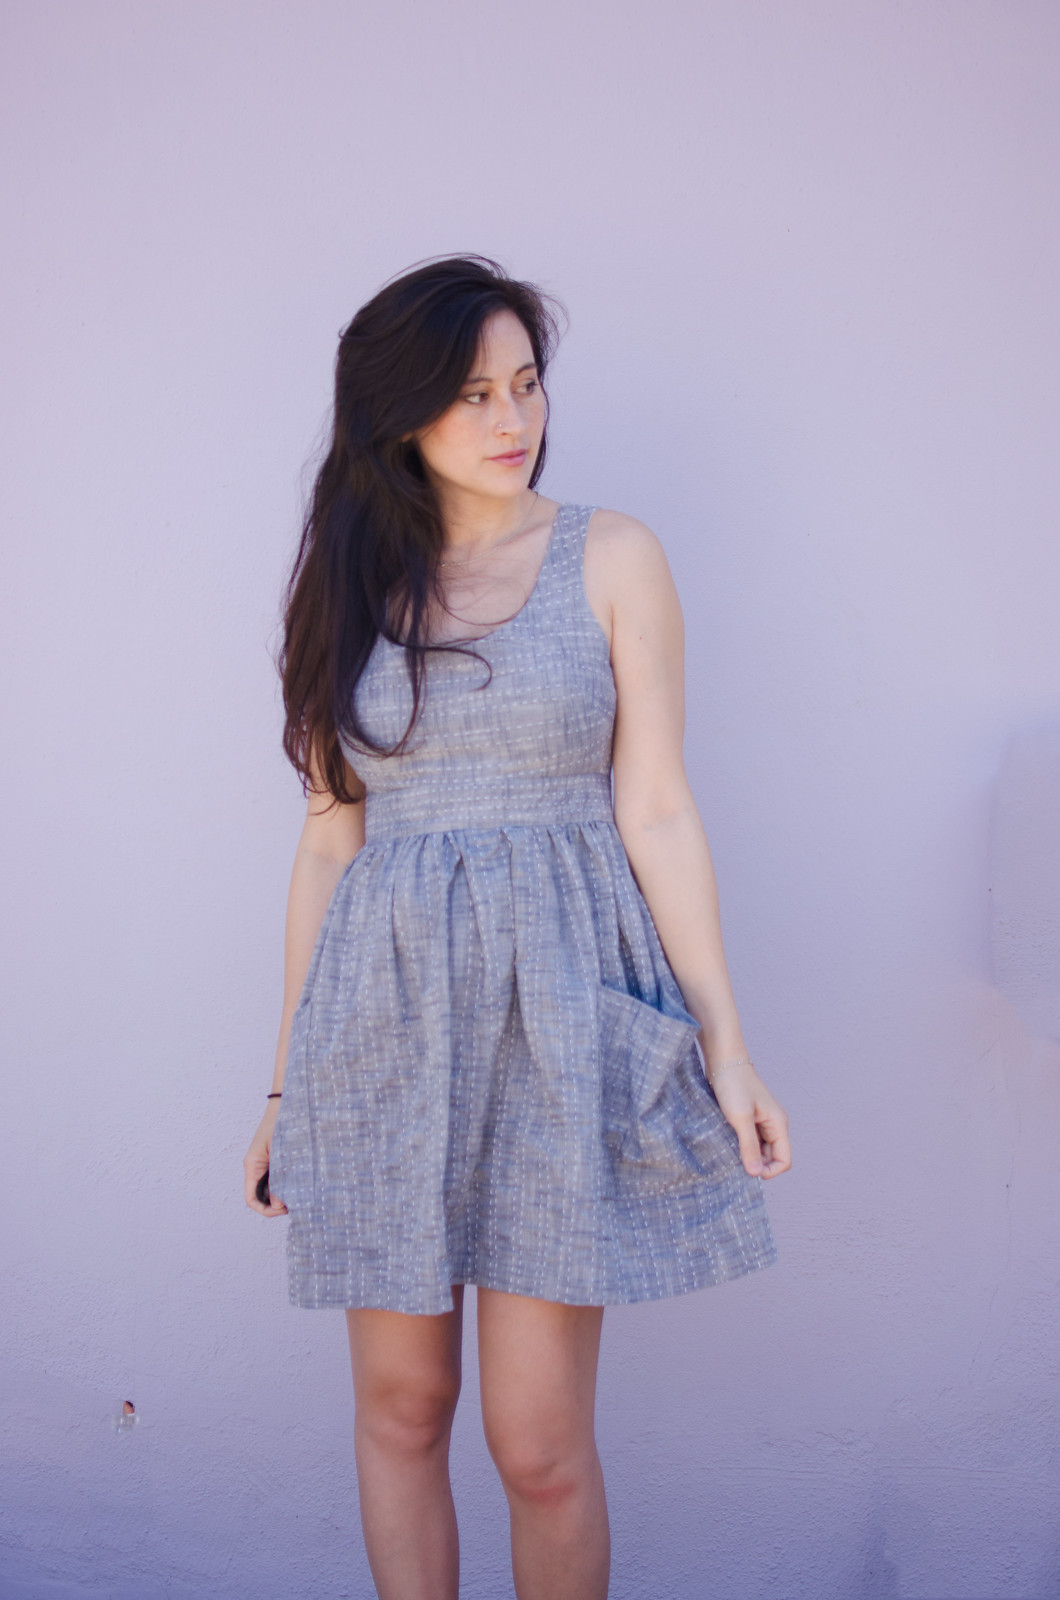 Sashiko dress